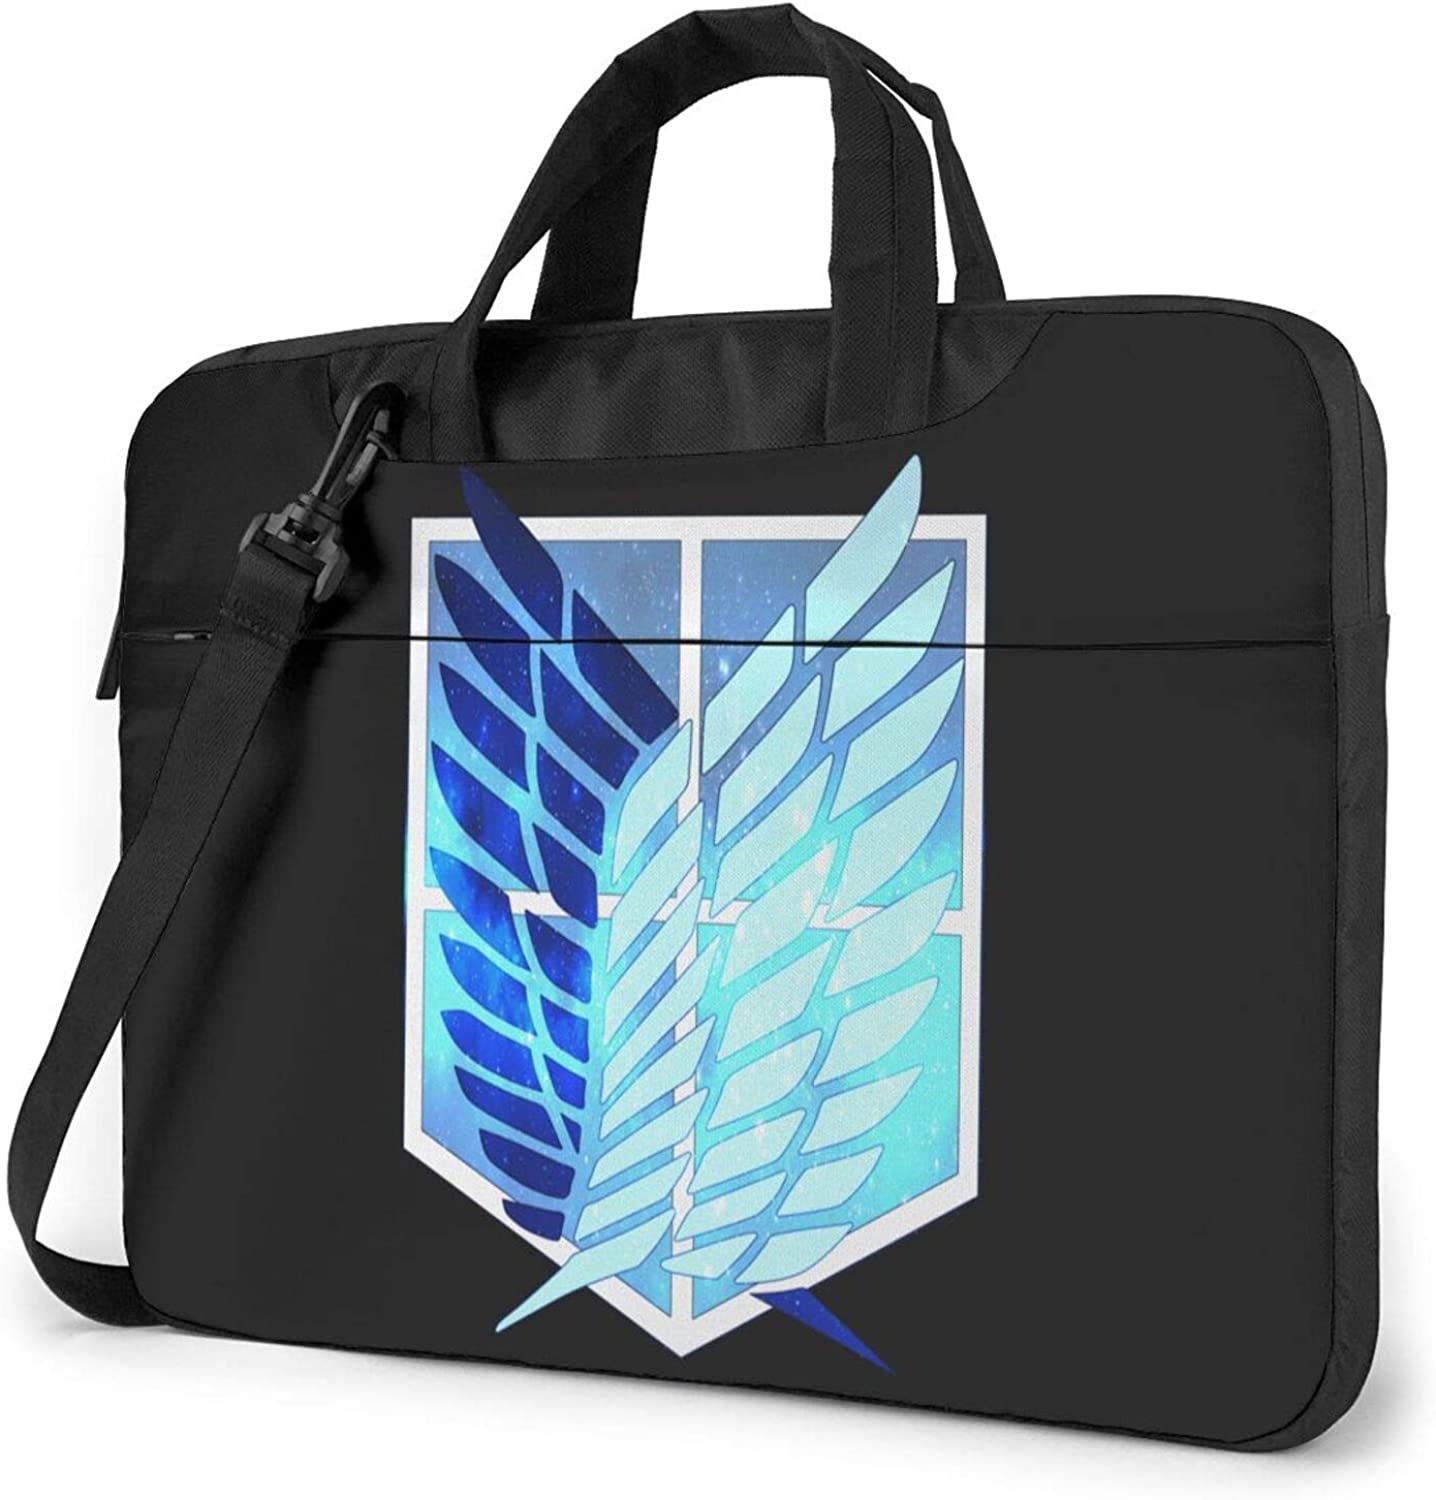 Attack On Titan Max 46% OFF Laptop Bag Portable Quality inspection Briefcase Tablet Protective